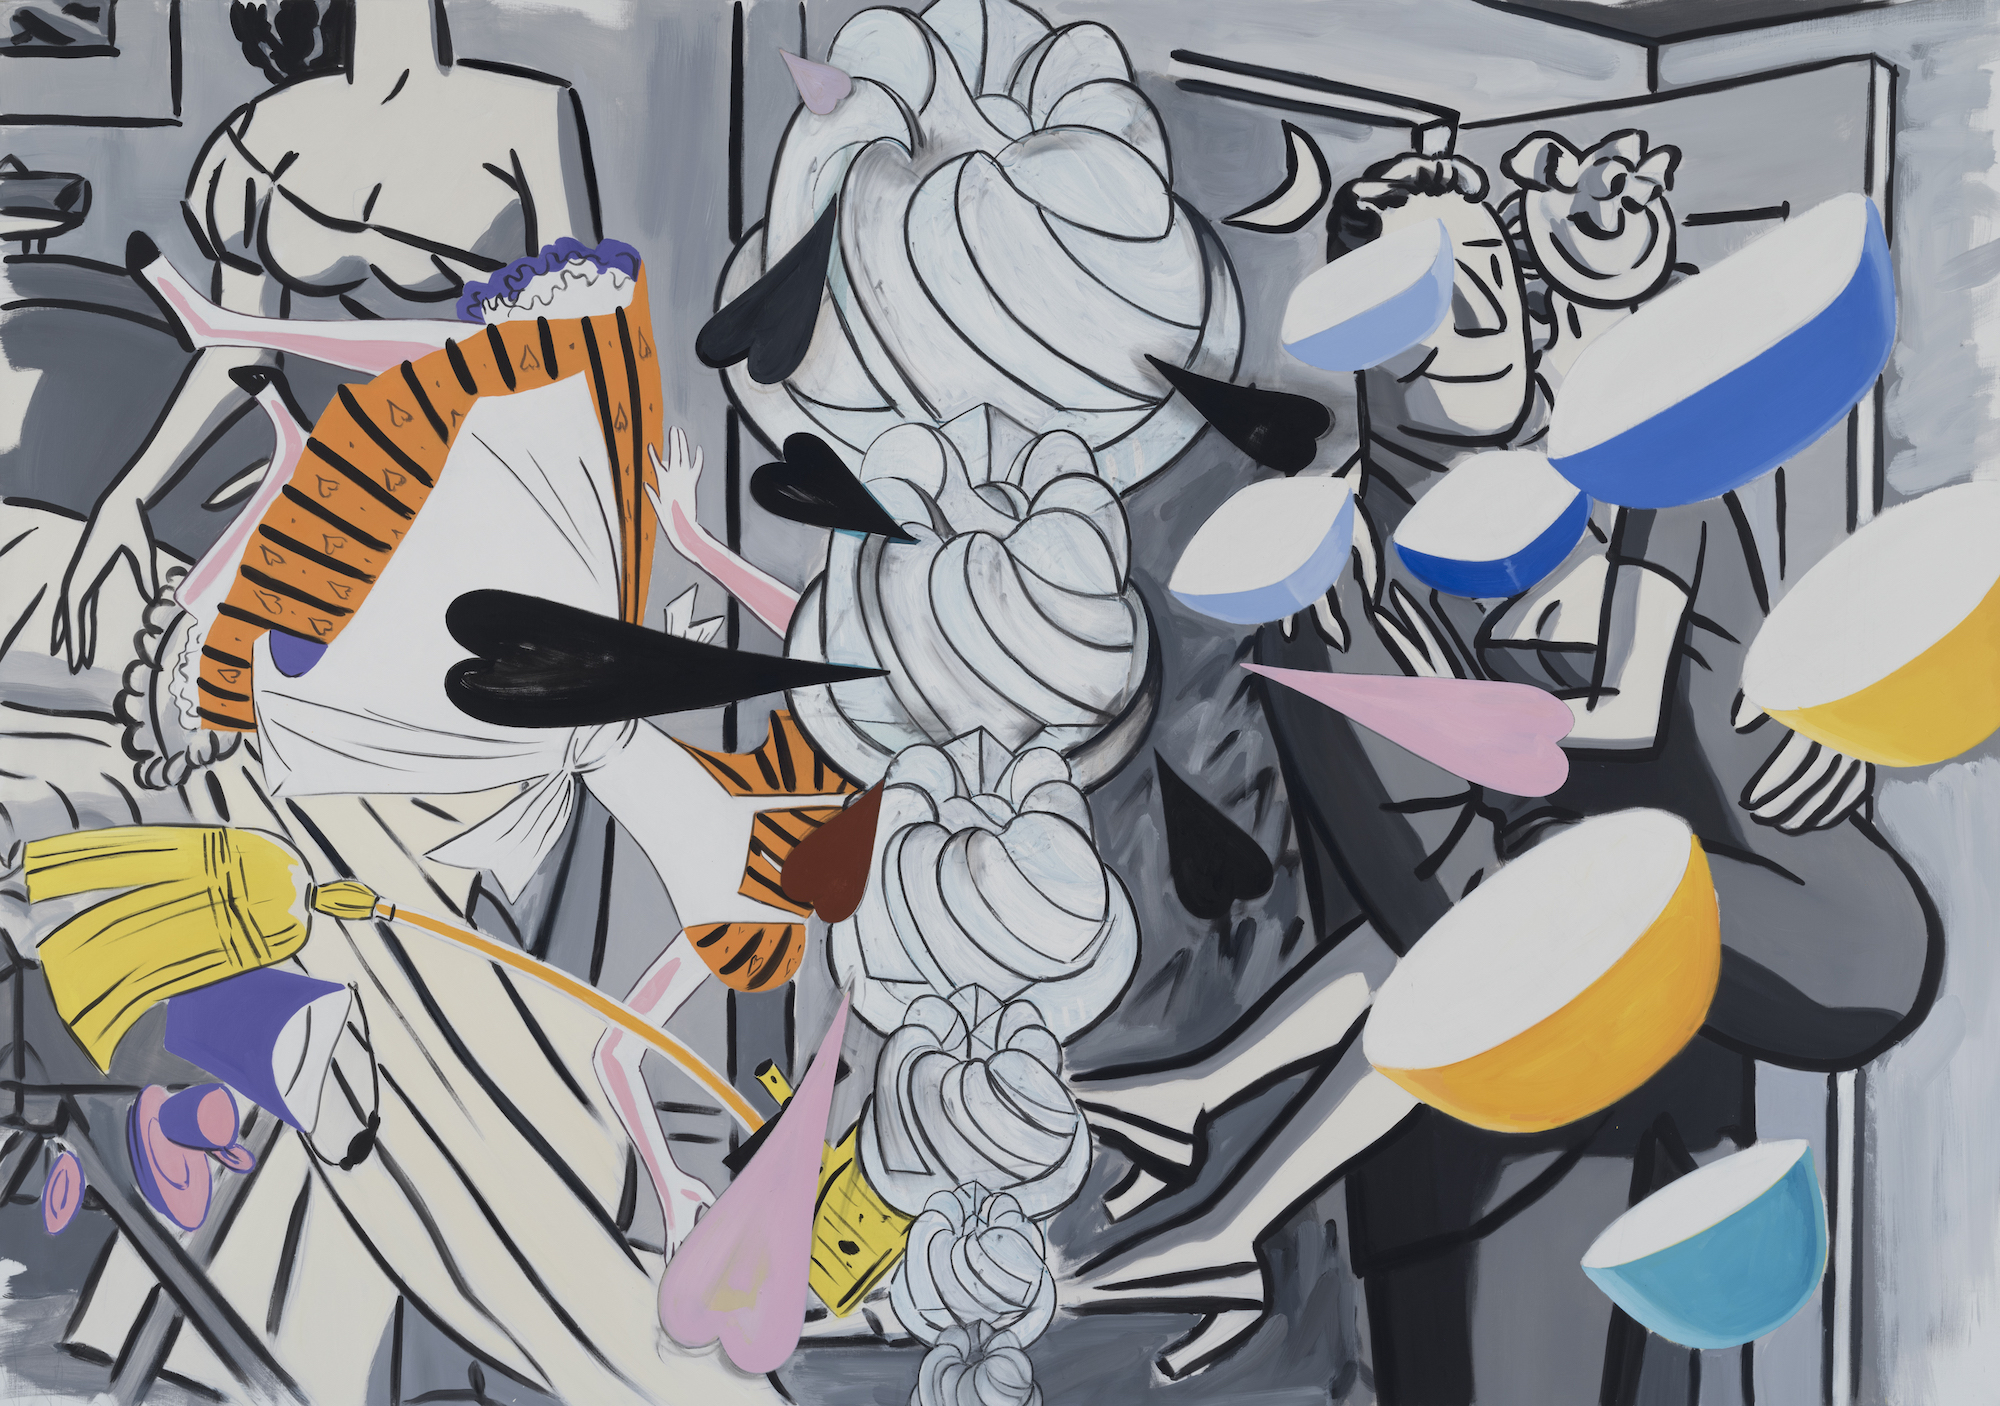 David Salle, Grey Honeymoon, 2018-19, oil and acrylic on linen. Courtesy of Skarstedt, New York